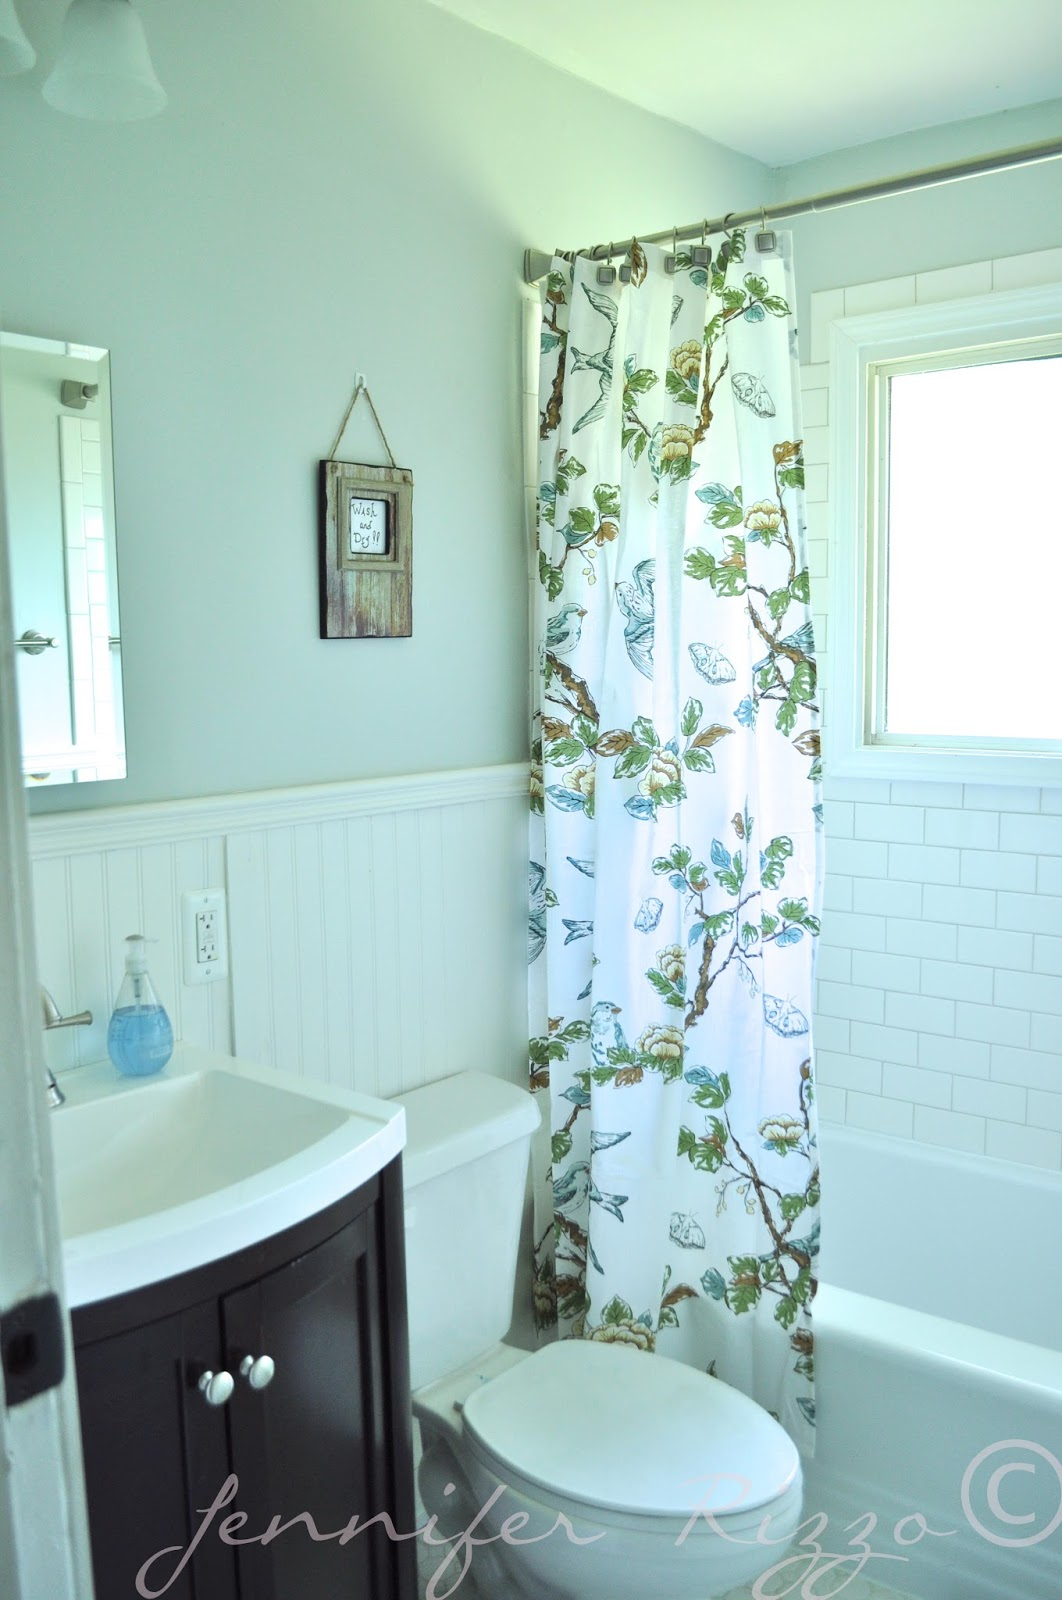 bathroom-wonderful-blue-shade-vintage-bathroom-tile-patterns-in-classic-kitchen-design-ideas-with-floral-pattern-bathtub-drapes-adorable-vintage-bathroom-tile-patterns-for-your-fabulous-bathroom - Copy